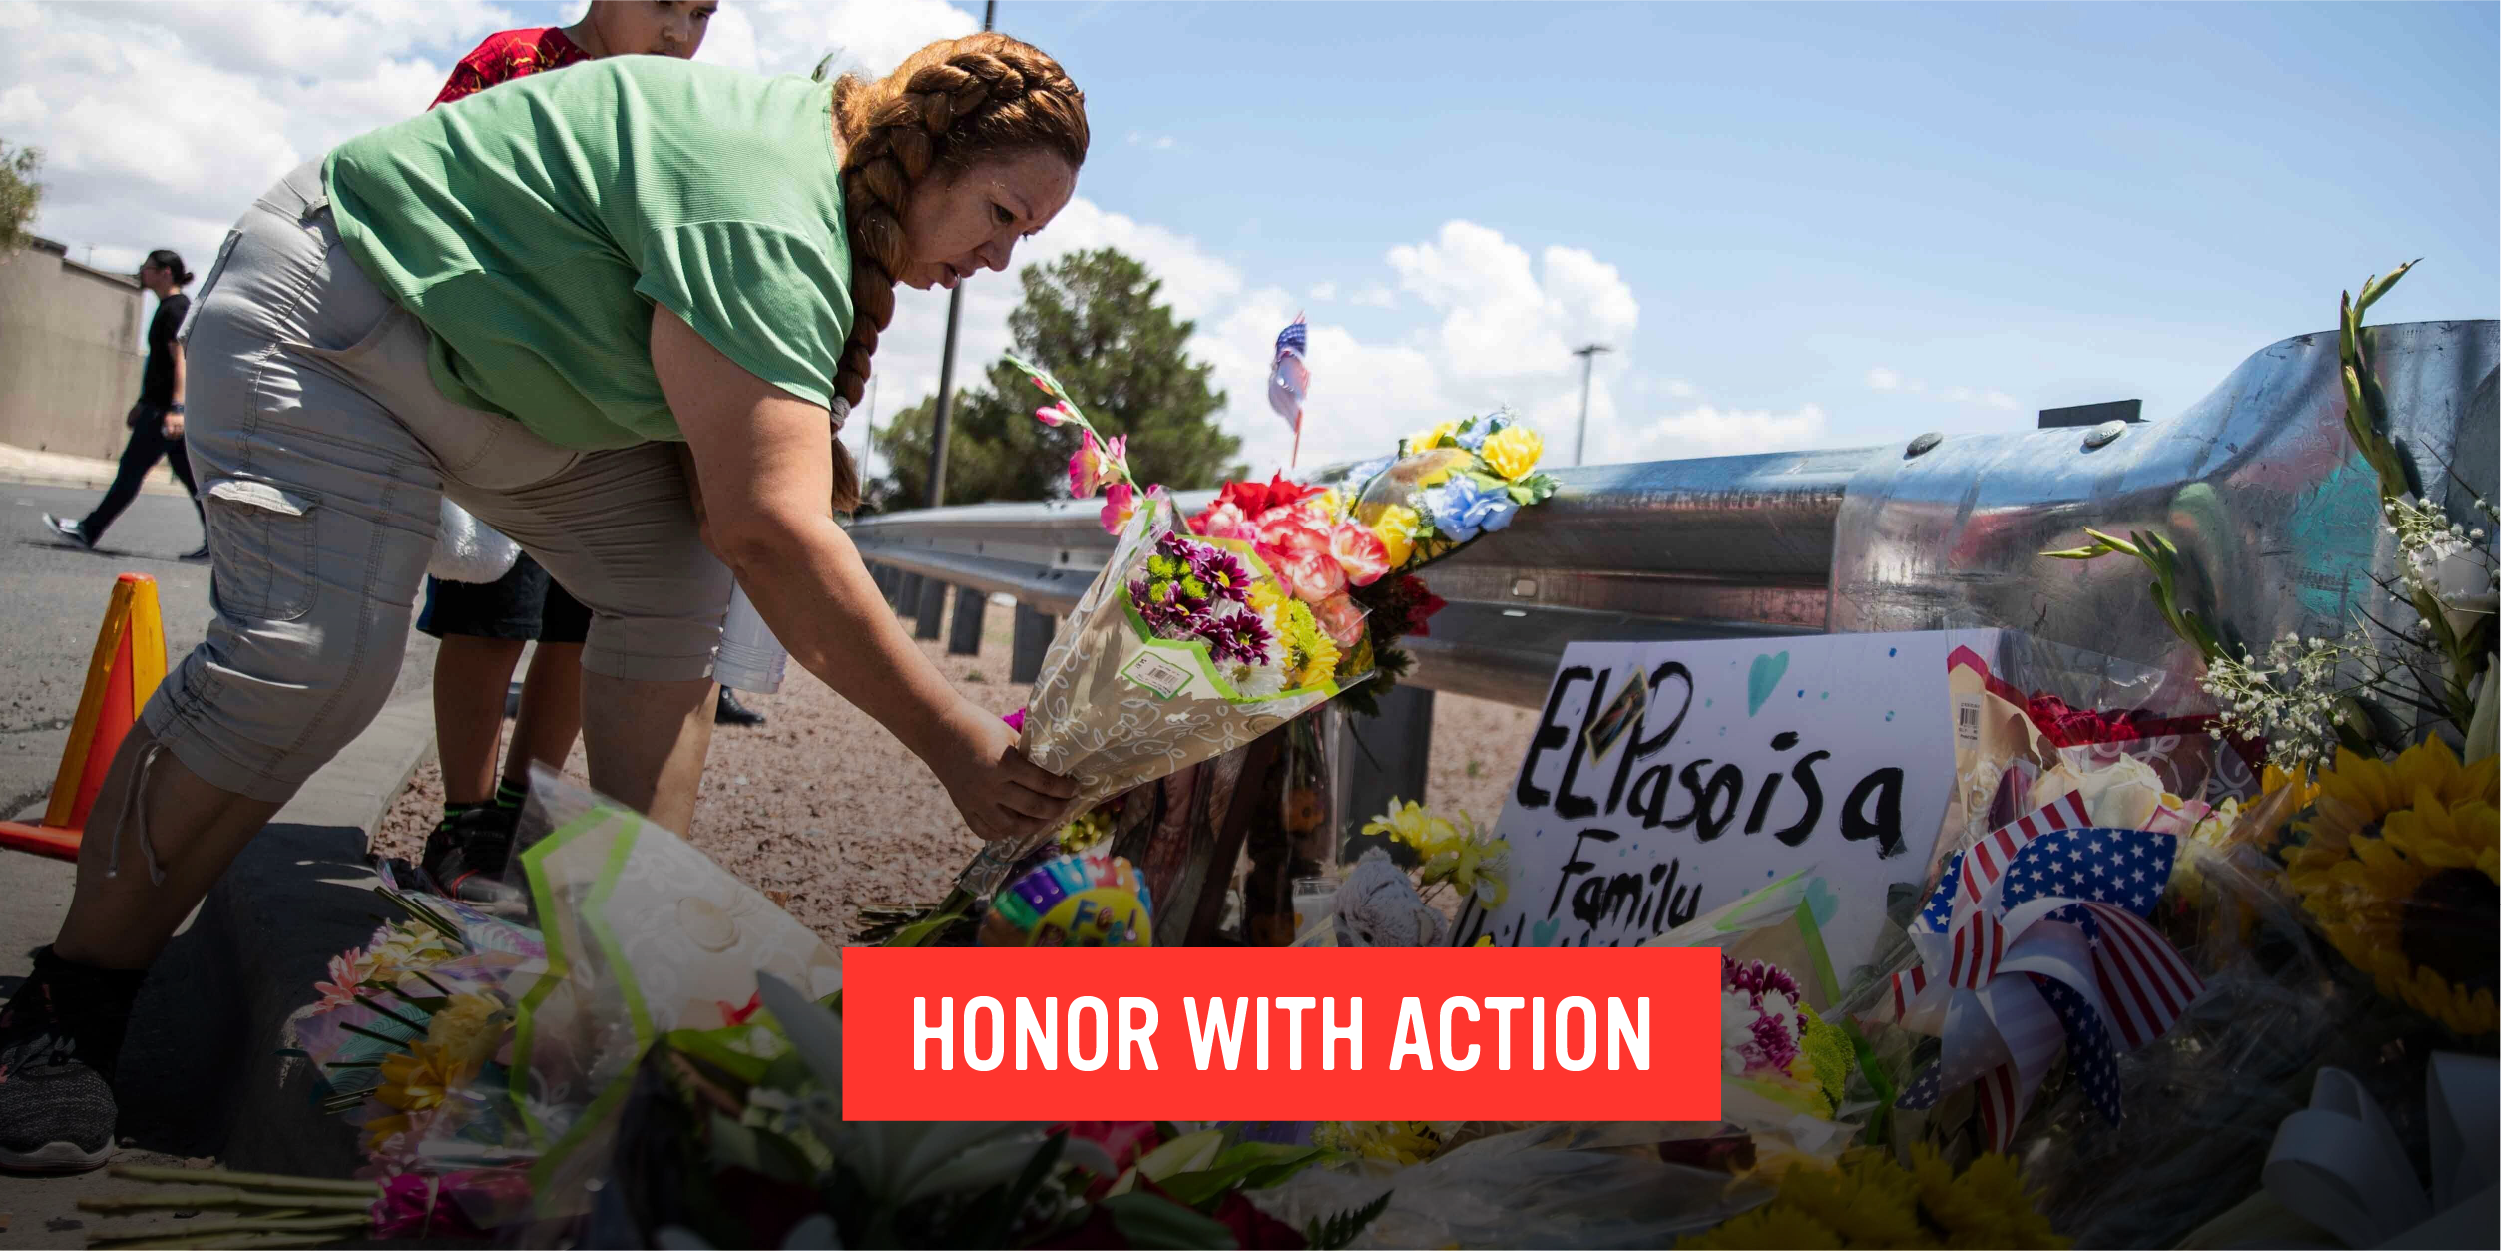 Honor victims and survivors of gun violence with action.